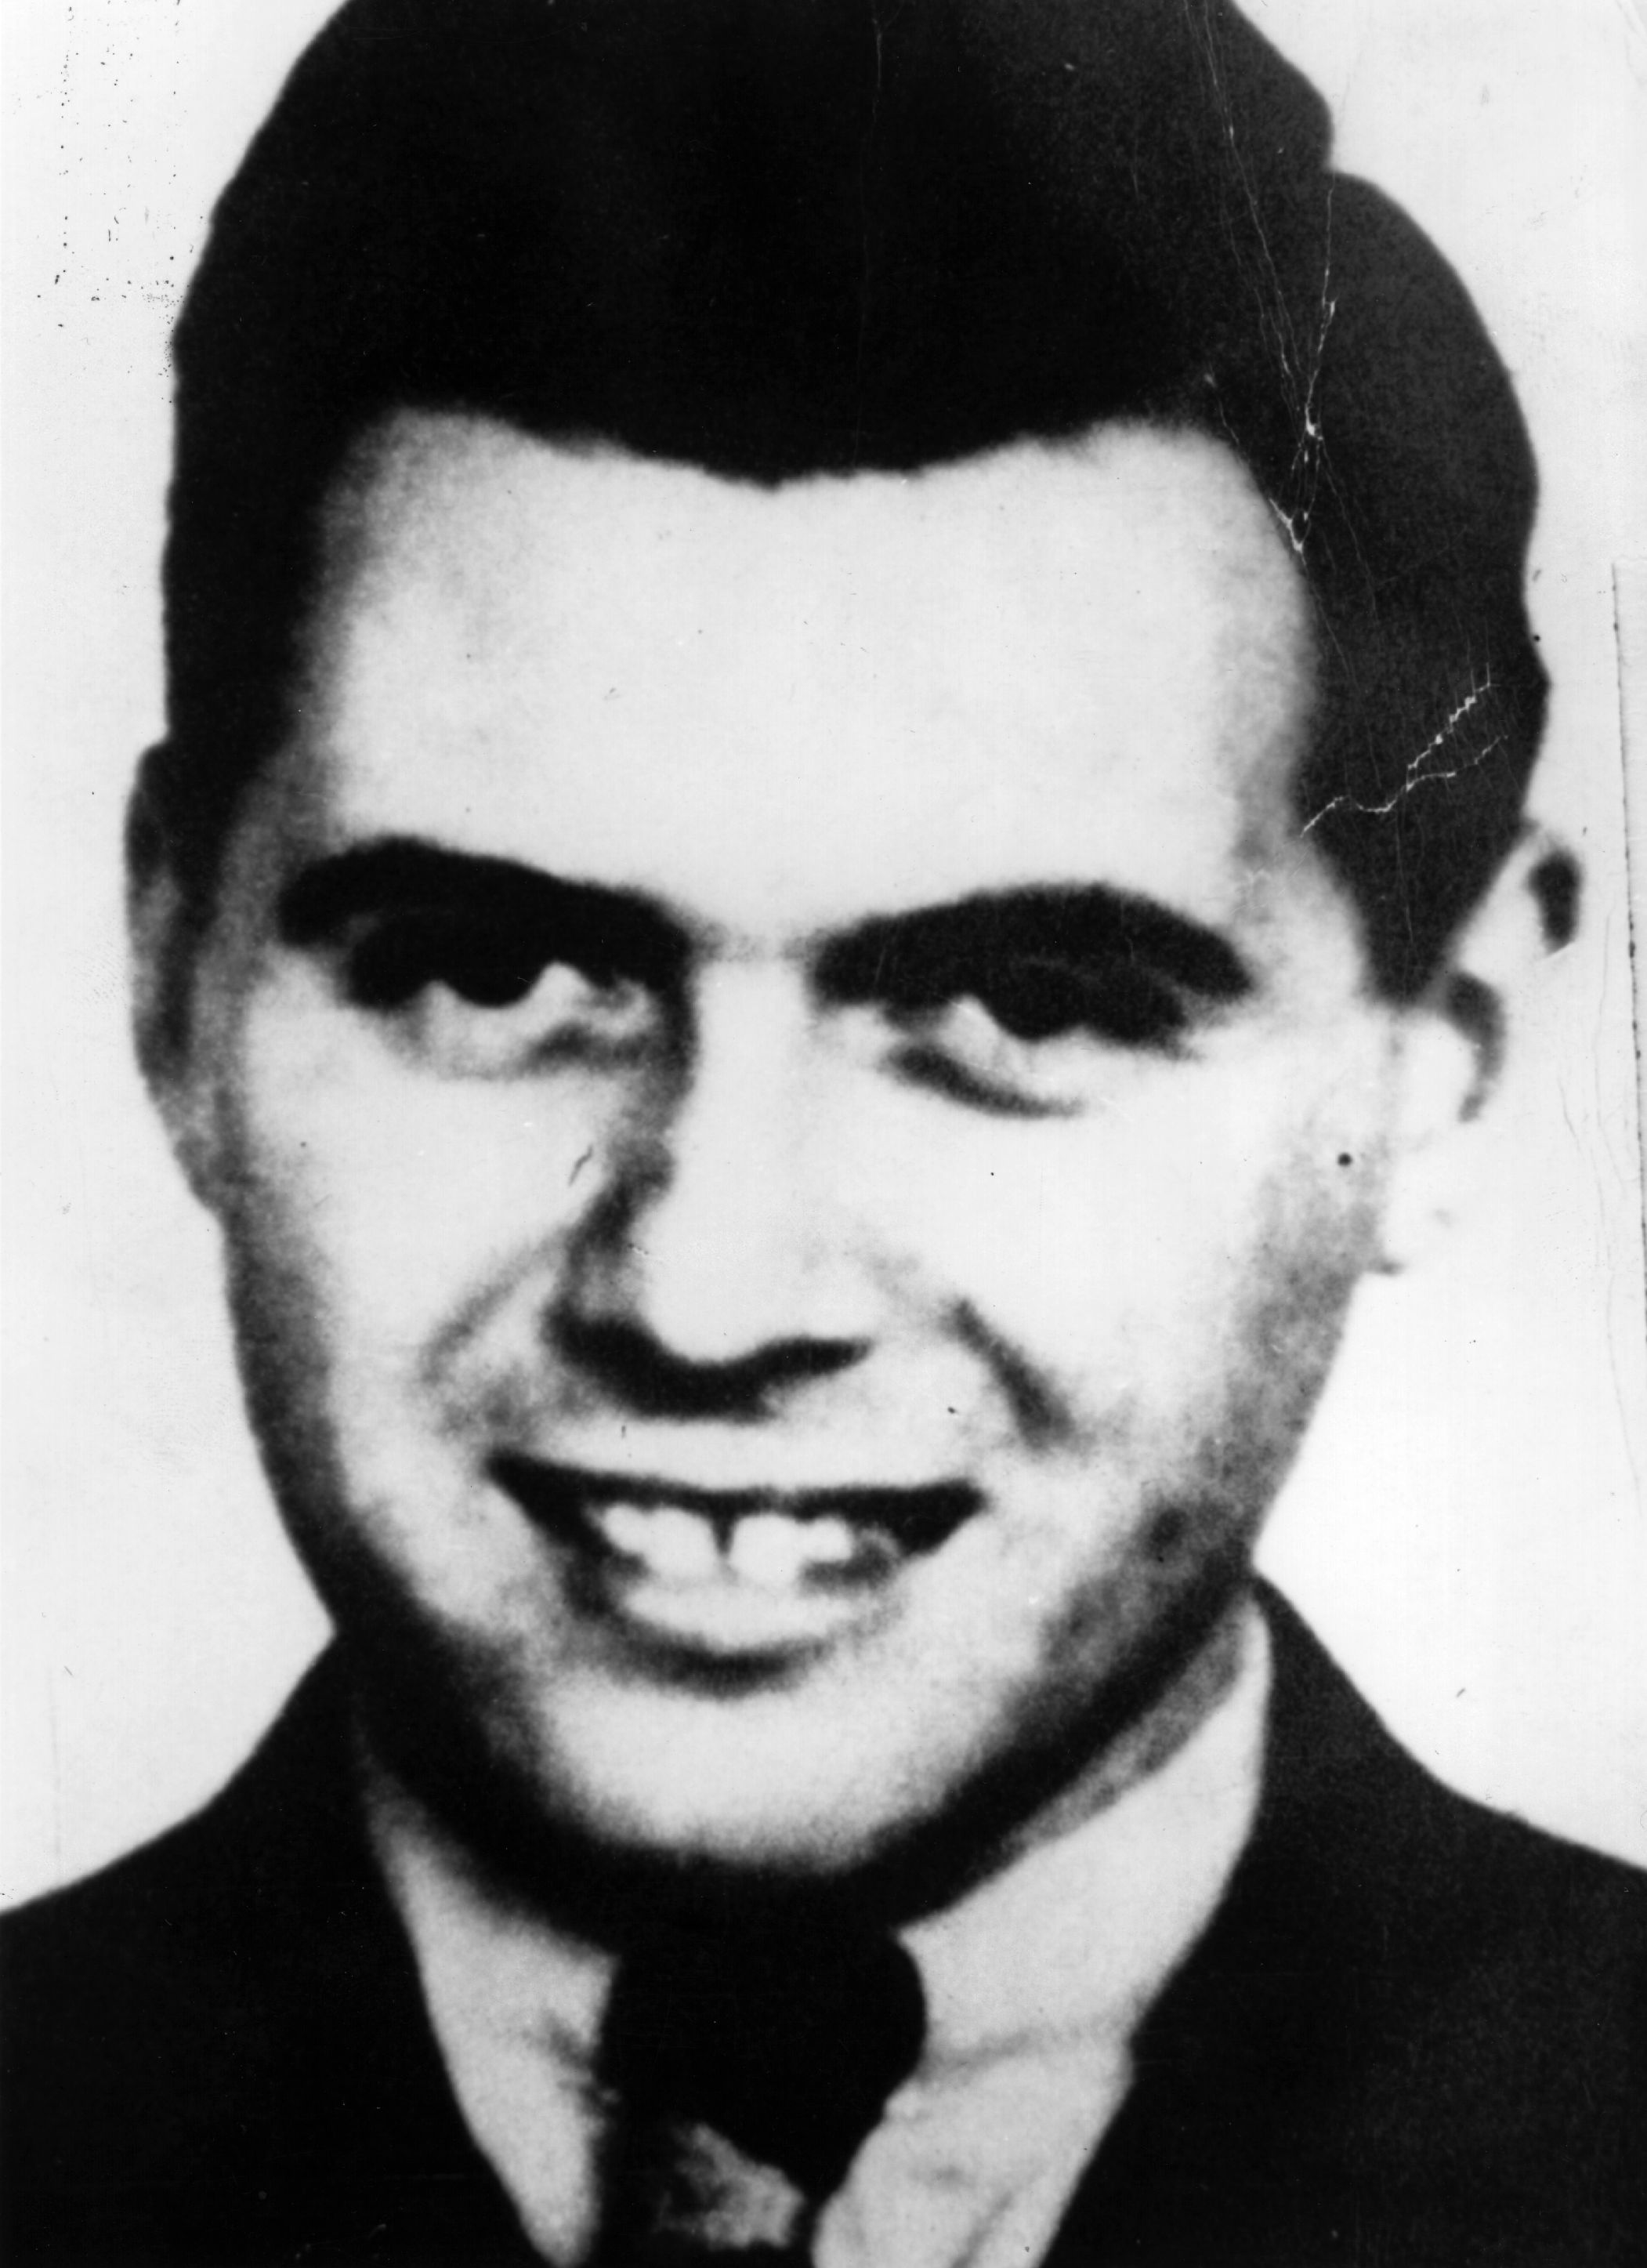 an introduction to the history of joseph mengele and his atrocities Introduction 21 the history of victoria secret what joseph mengele did at auschwitz left his victims.